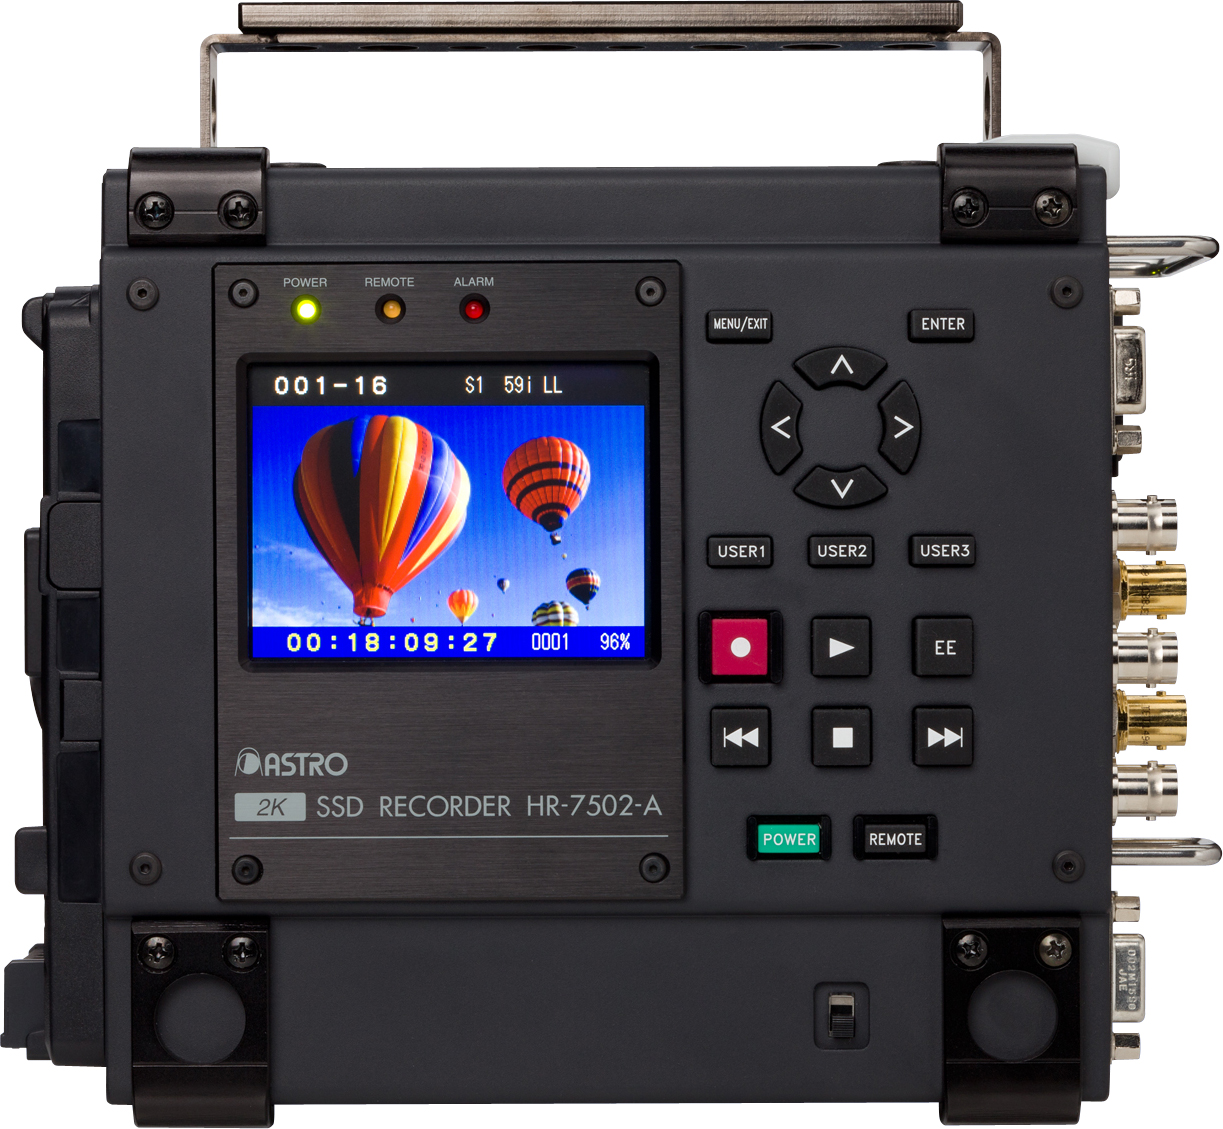 Astro 2k SSD ARRIRAW Recorder now Approved for Alexa: